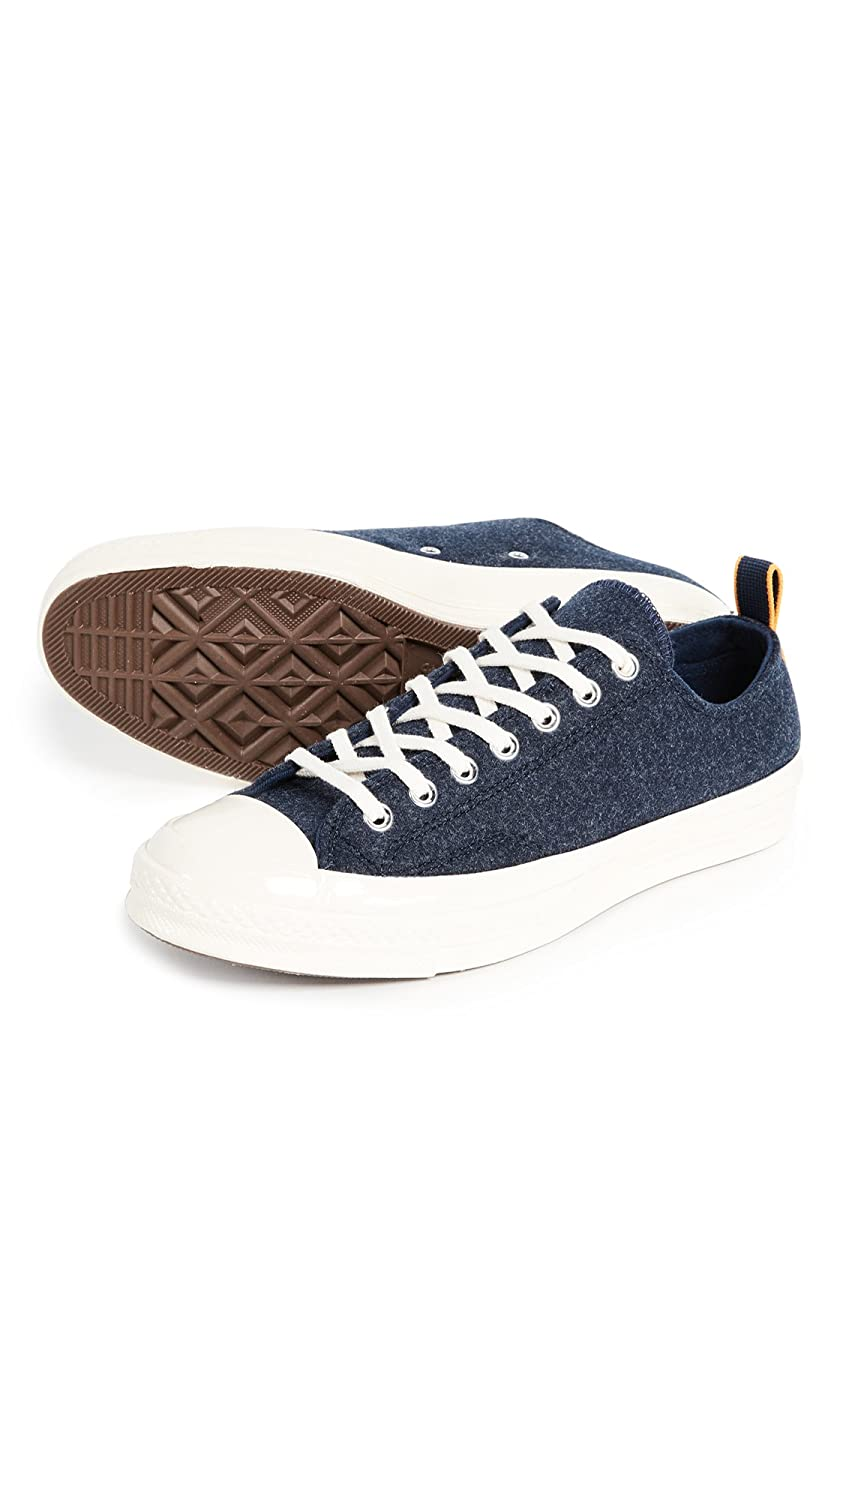 Converse AS Hi Can charcoal 1J793 Unisex-Erwachsene Unisex-Erwachsene Unisex-Erwachsene Turnschuhe  63446a